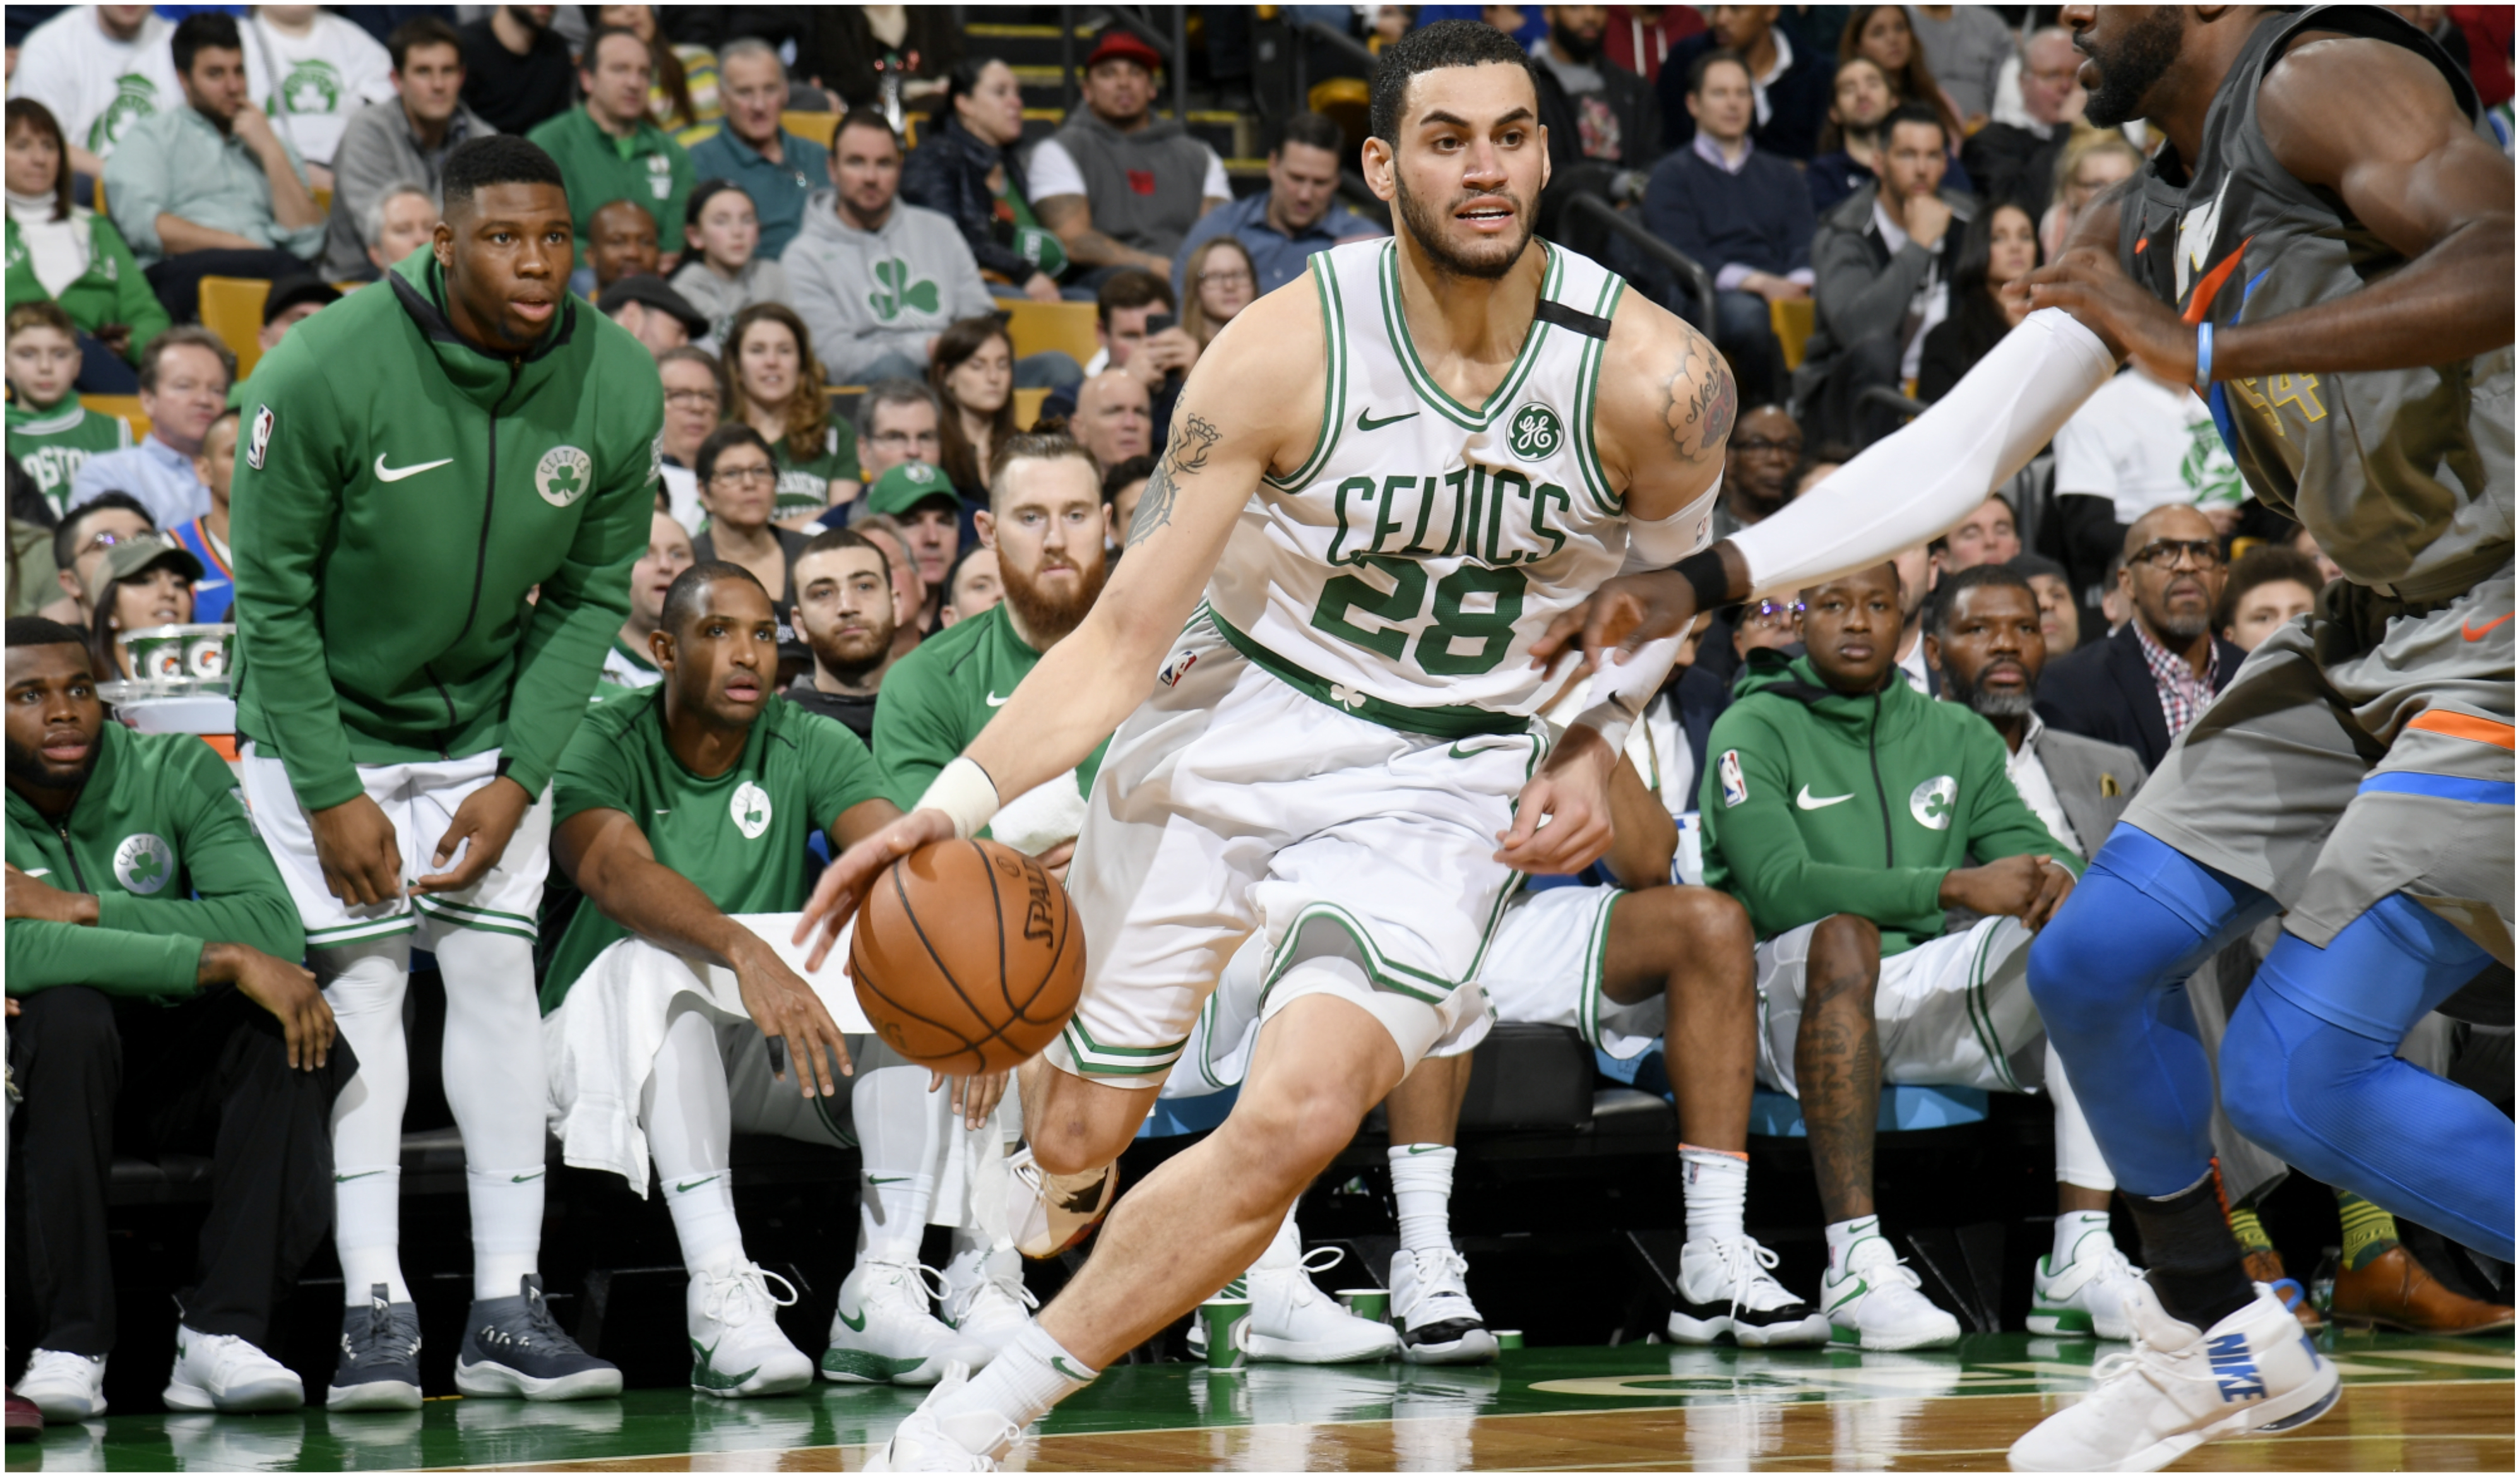 Abdel Nader is in his first season with the Celtics after playing in the G-League last year.